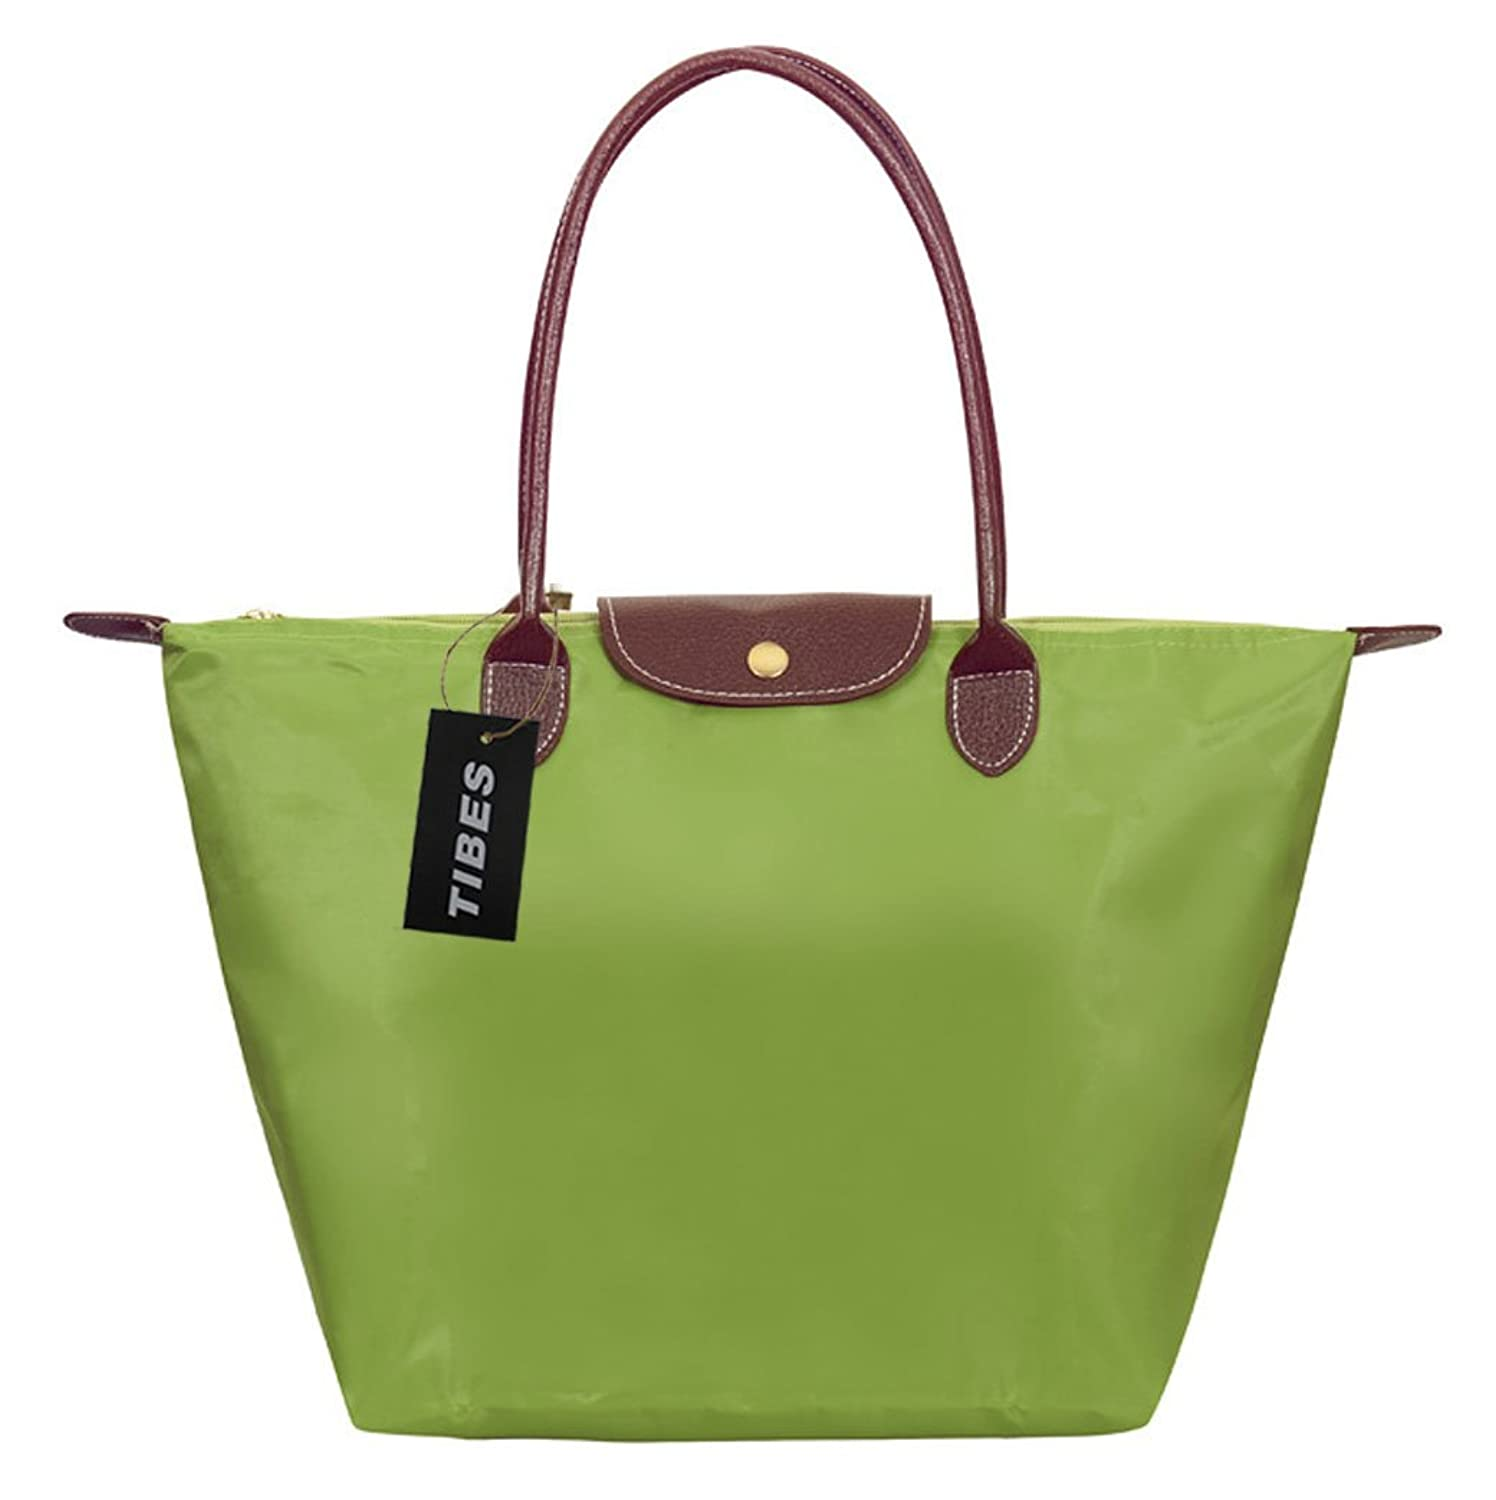 Longchamp Reisetasche Amazon